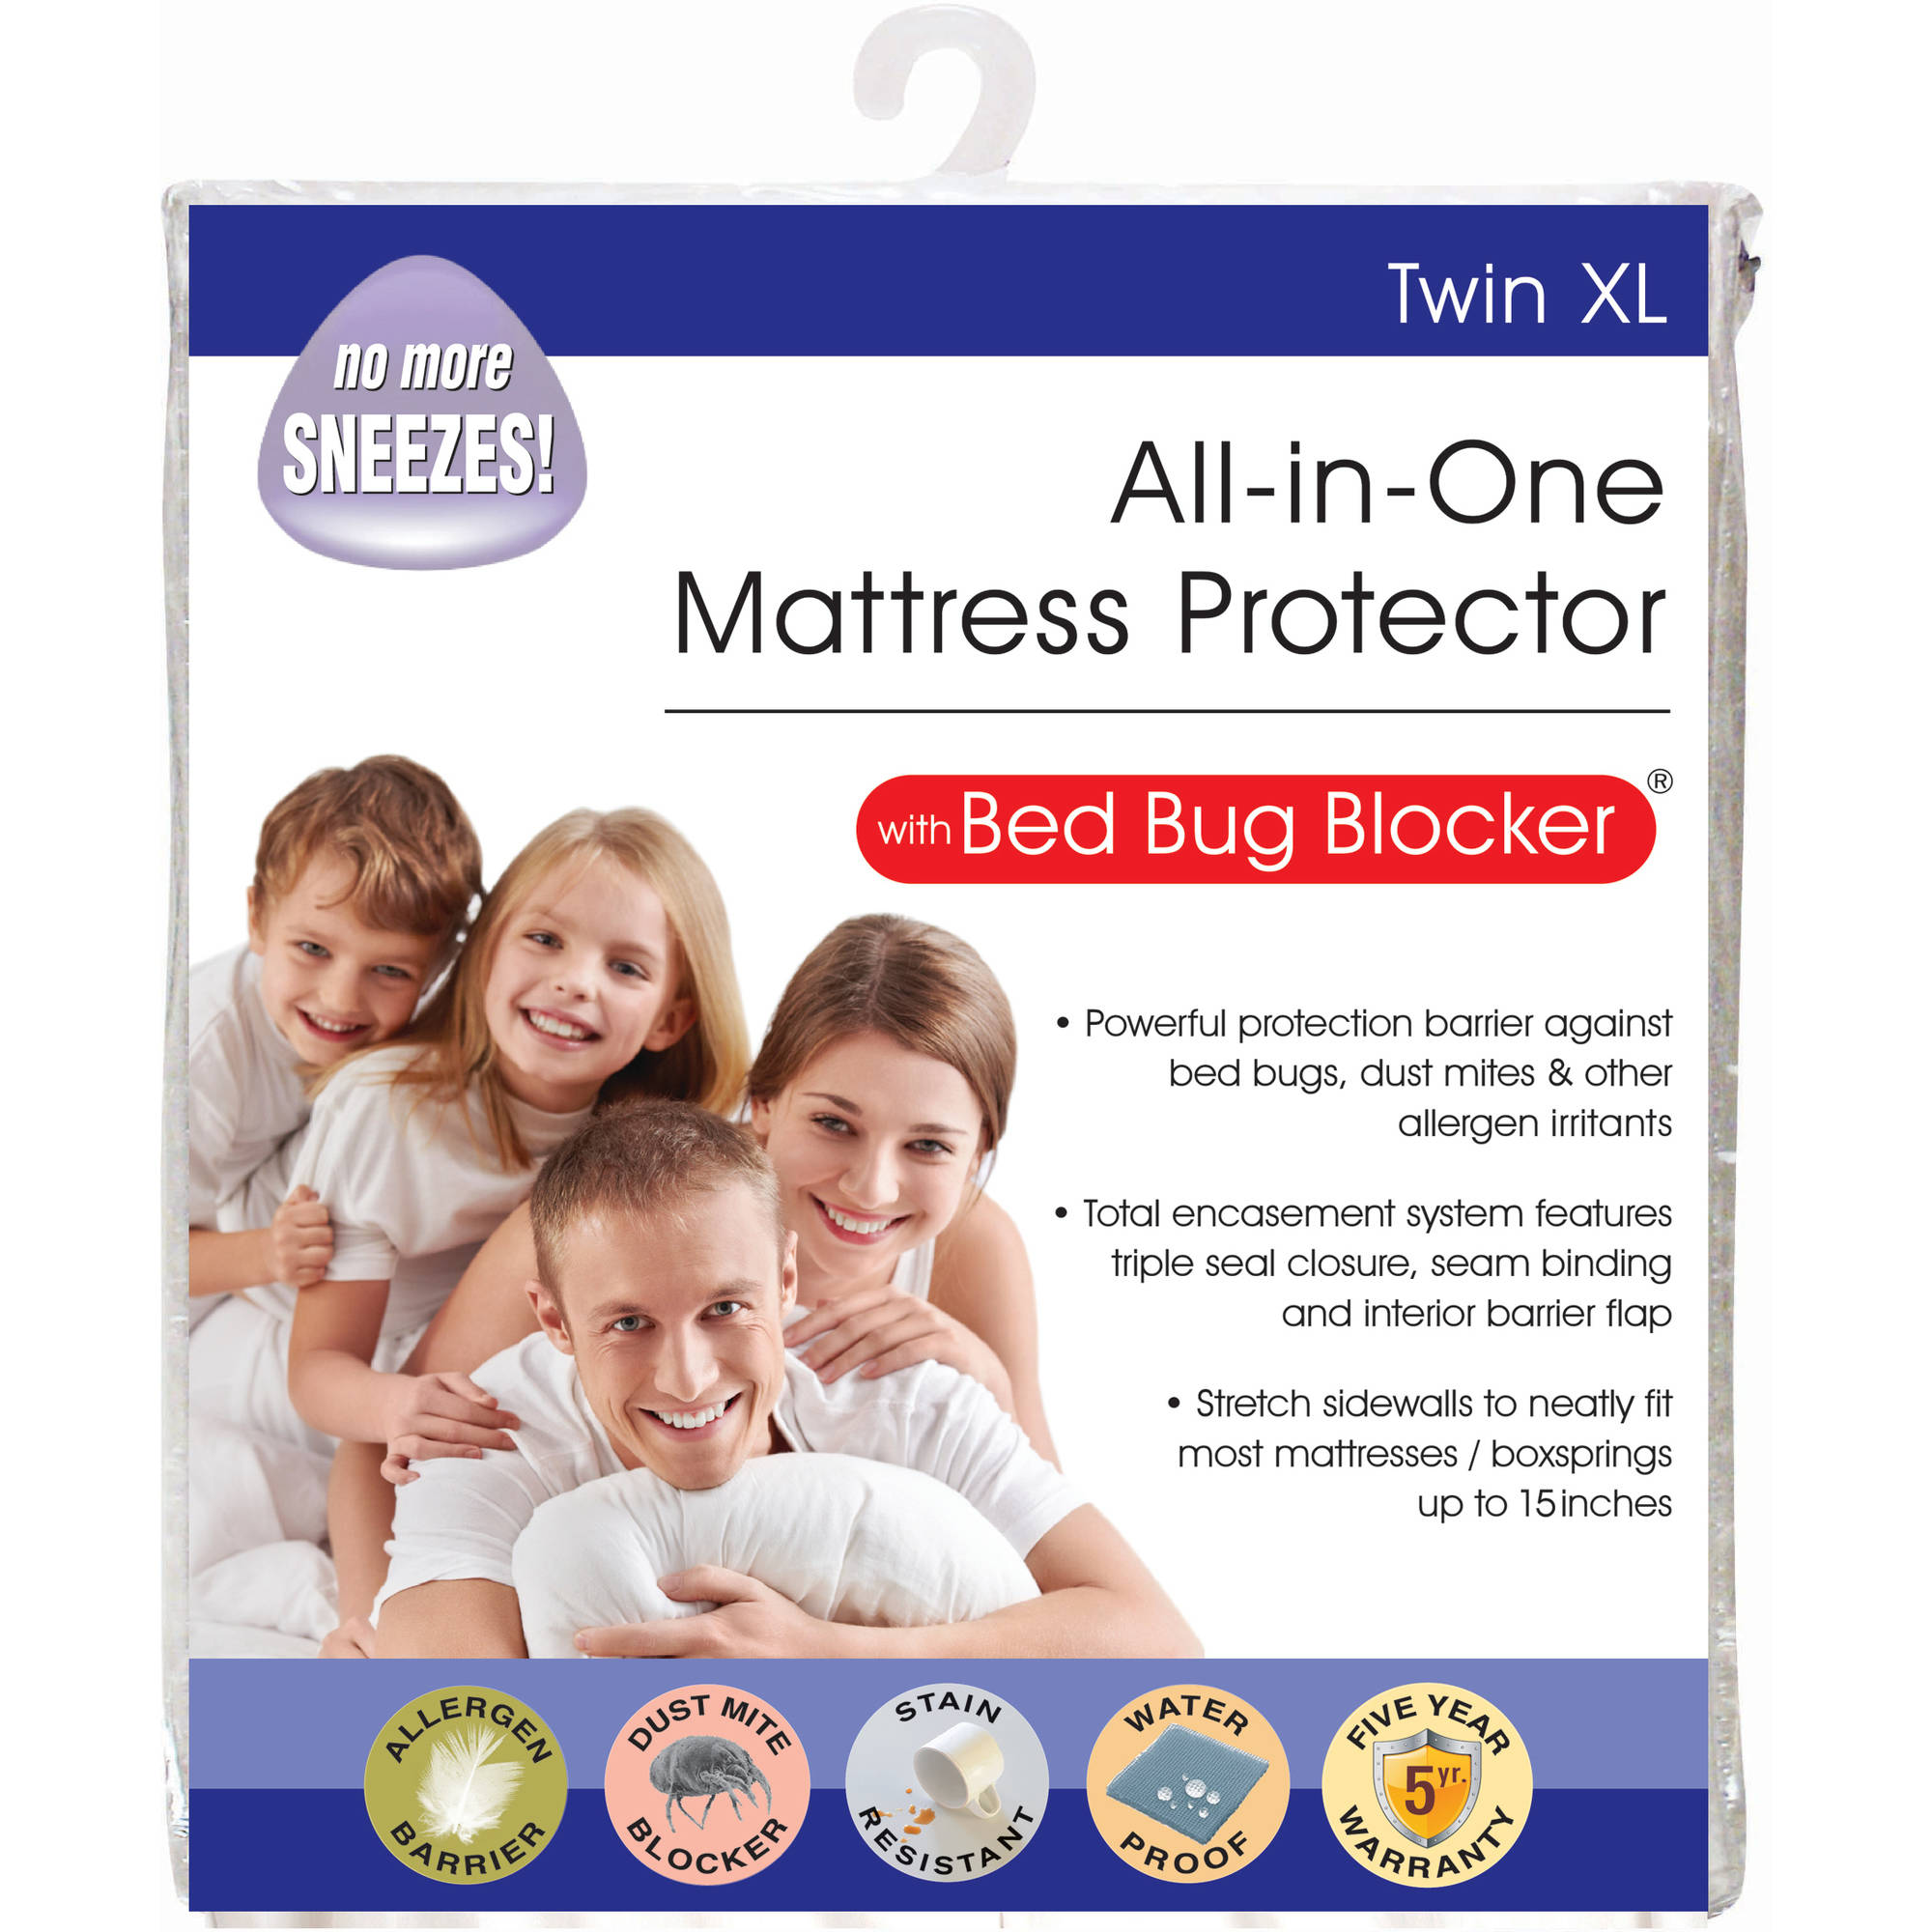 William H Mcraven Make Your Bed Kamisco